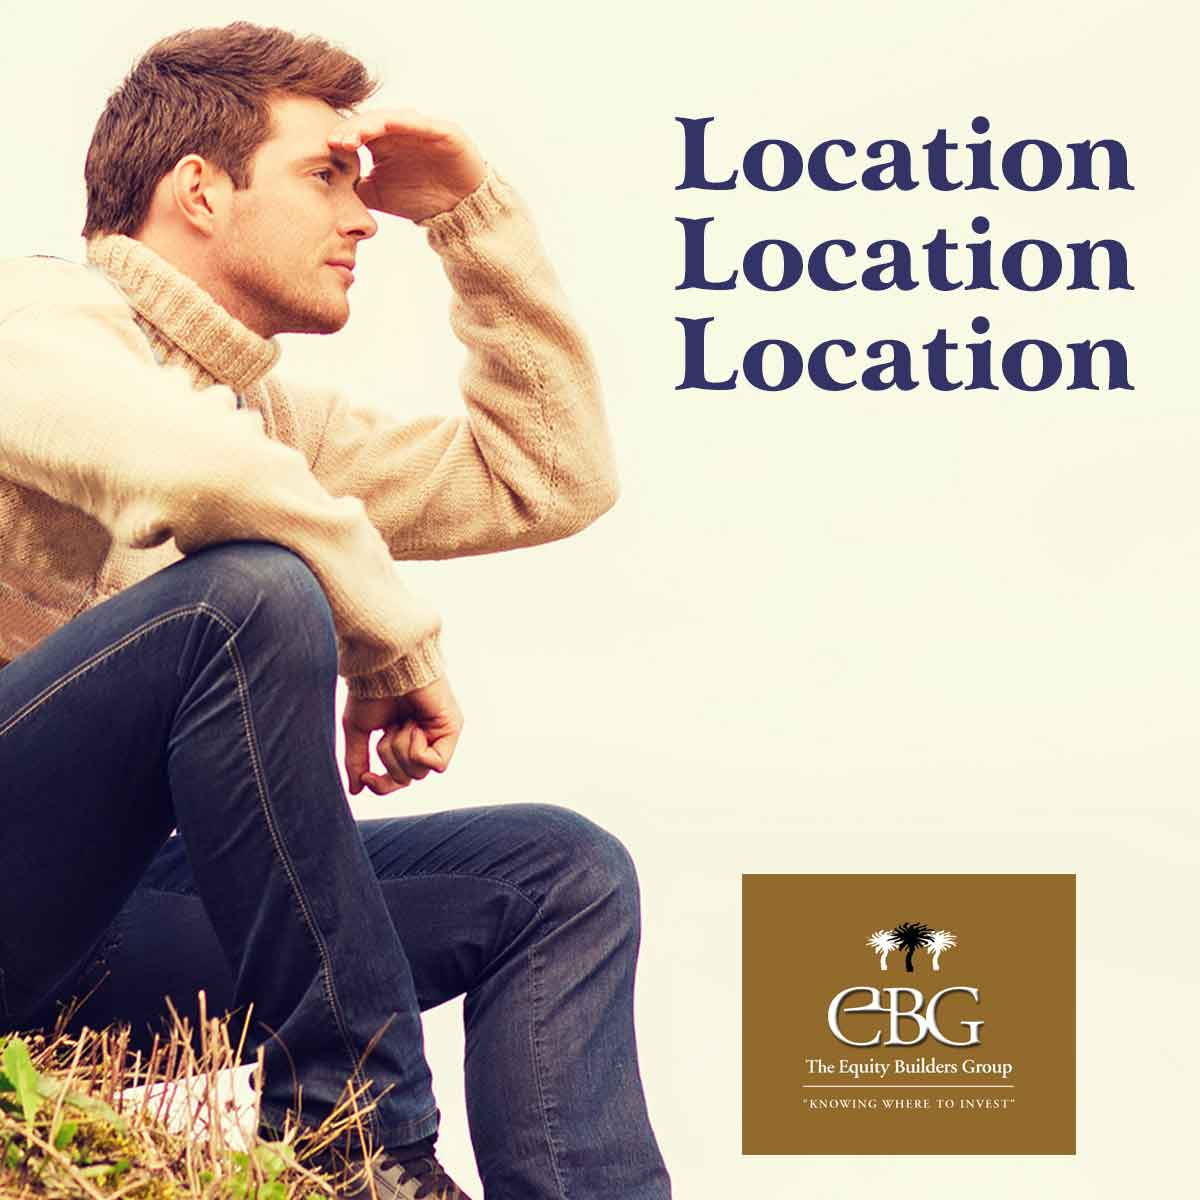 Real Estate Investing Is About Location, Location, Location - Equity Builders Group